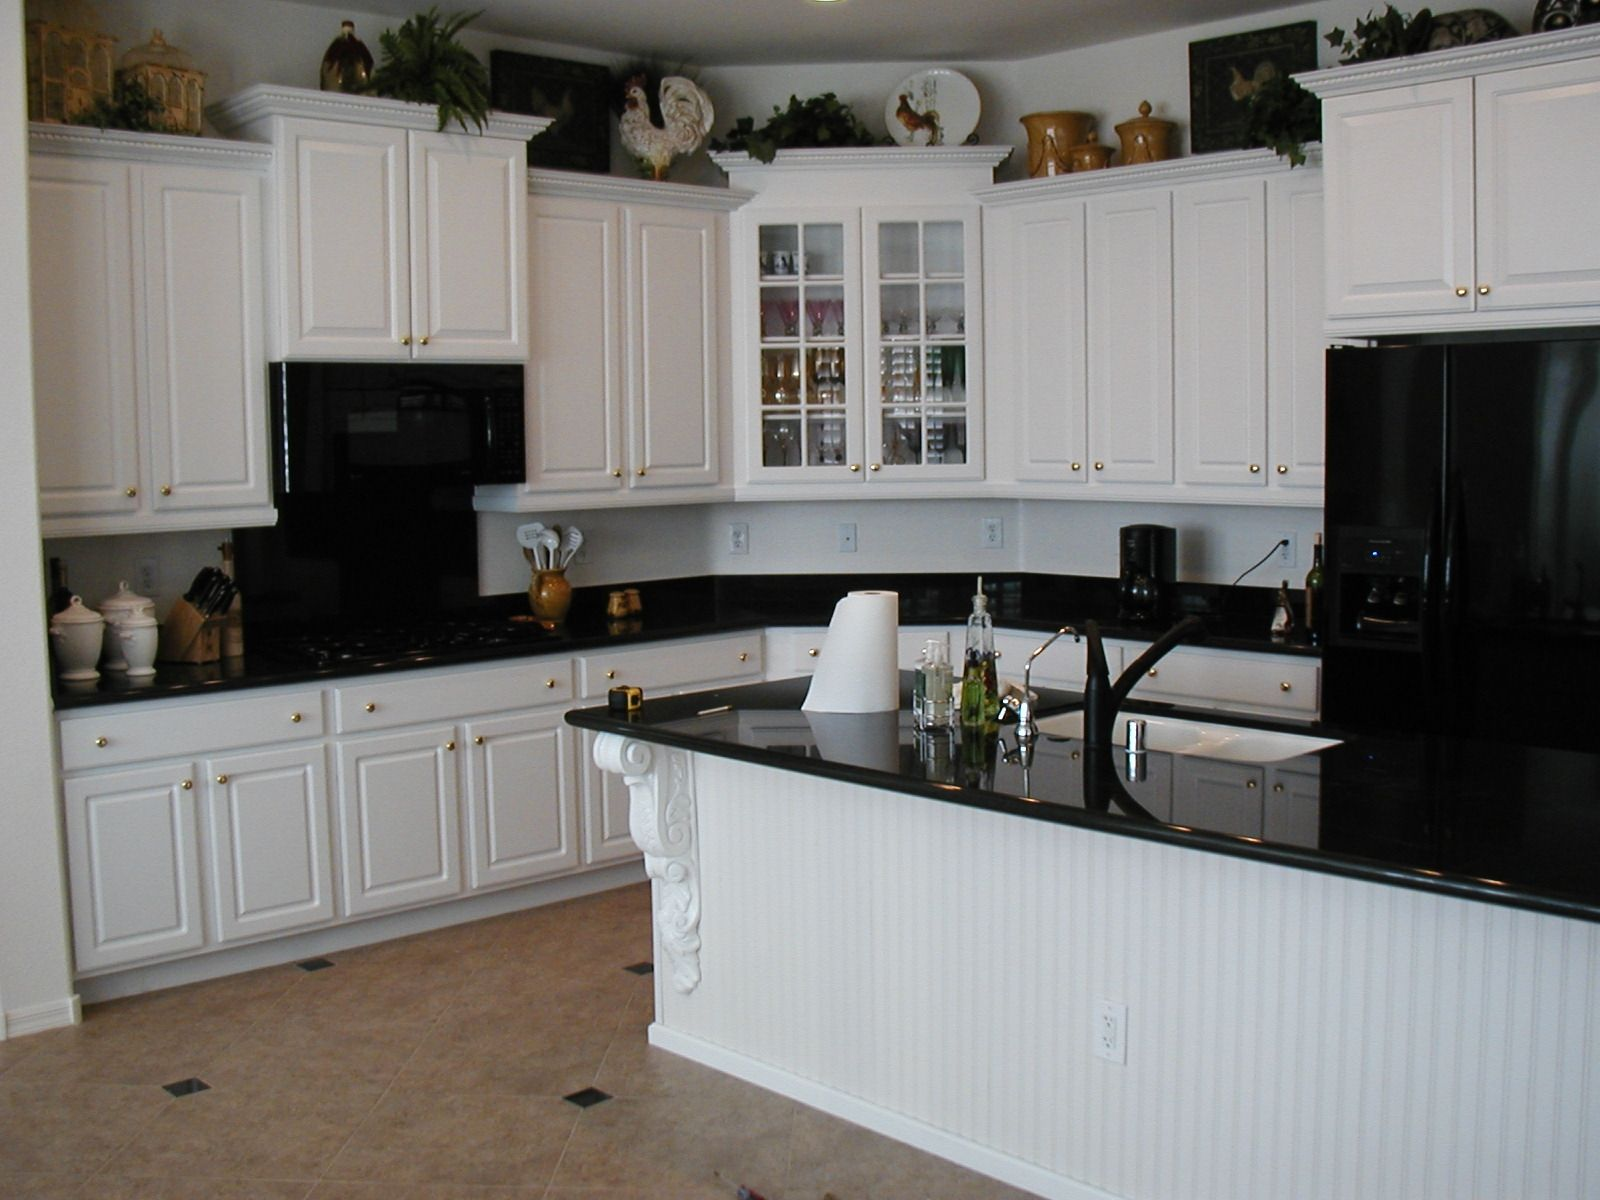 White Kitchen Cabinets With Black Countertops Photos Of White Kitchens With  Black Appliances And Black Model Part 6